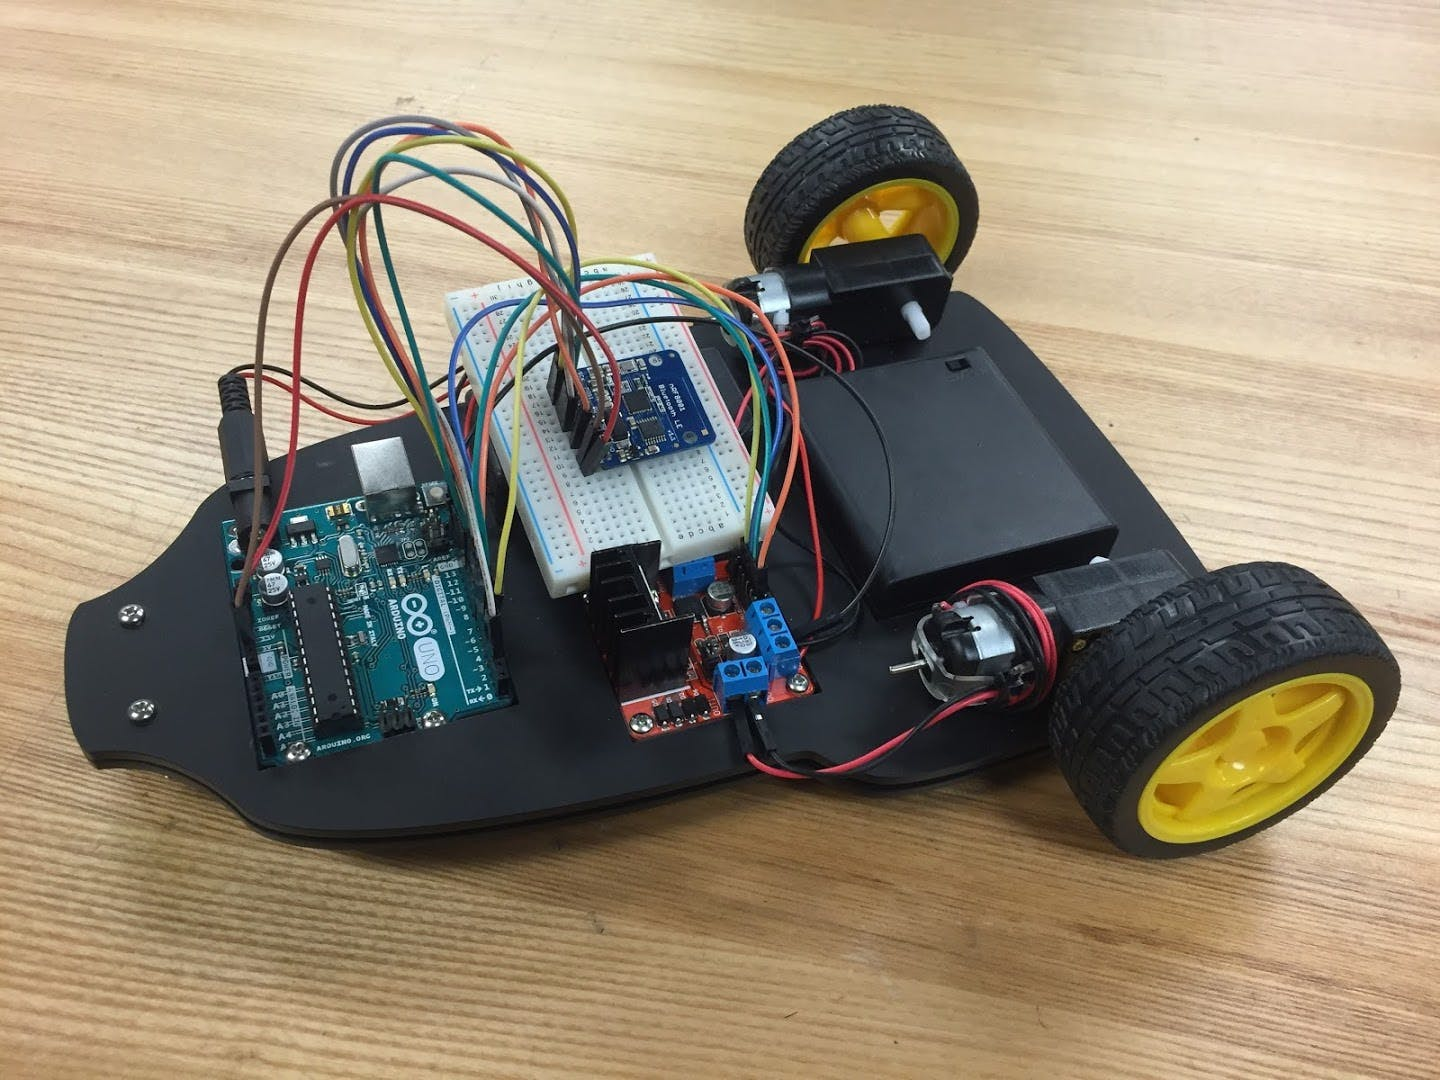 HW 07: Bluetooth Controlled Vehicle